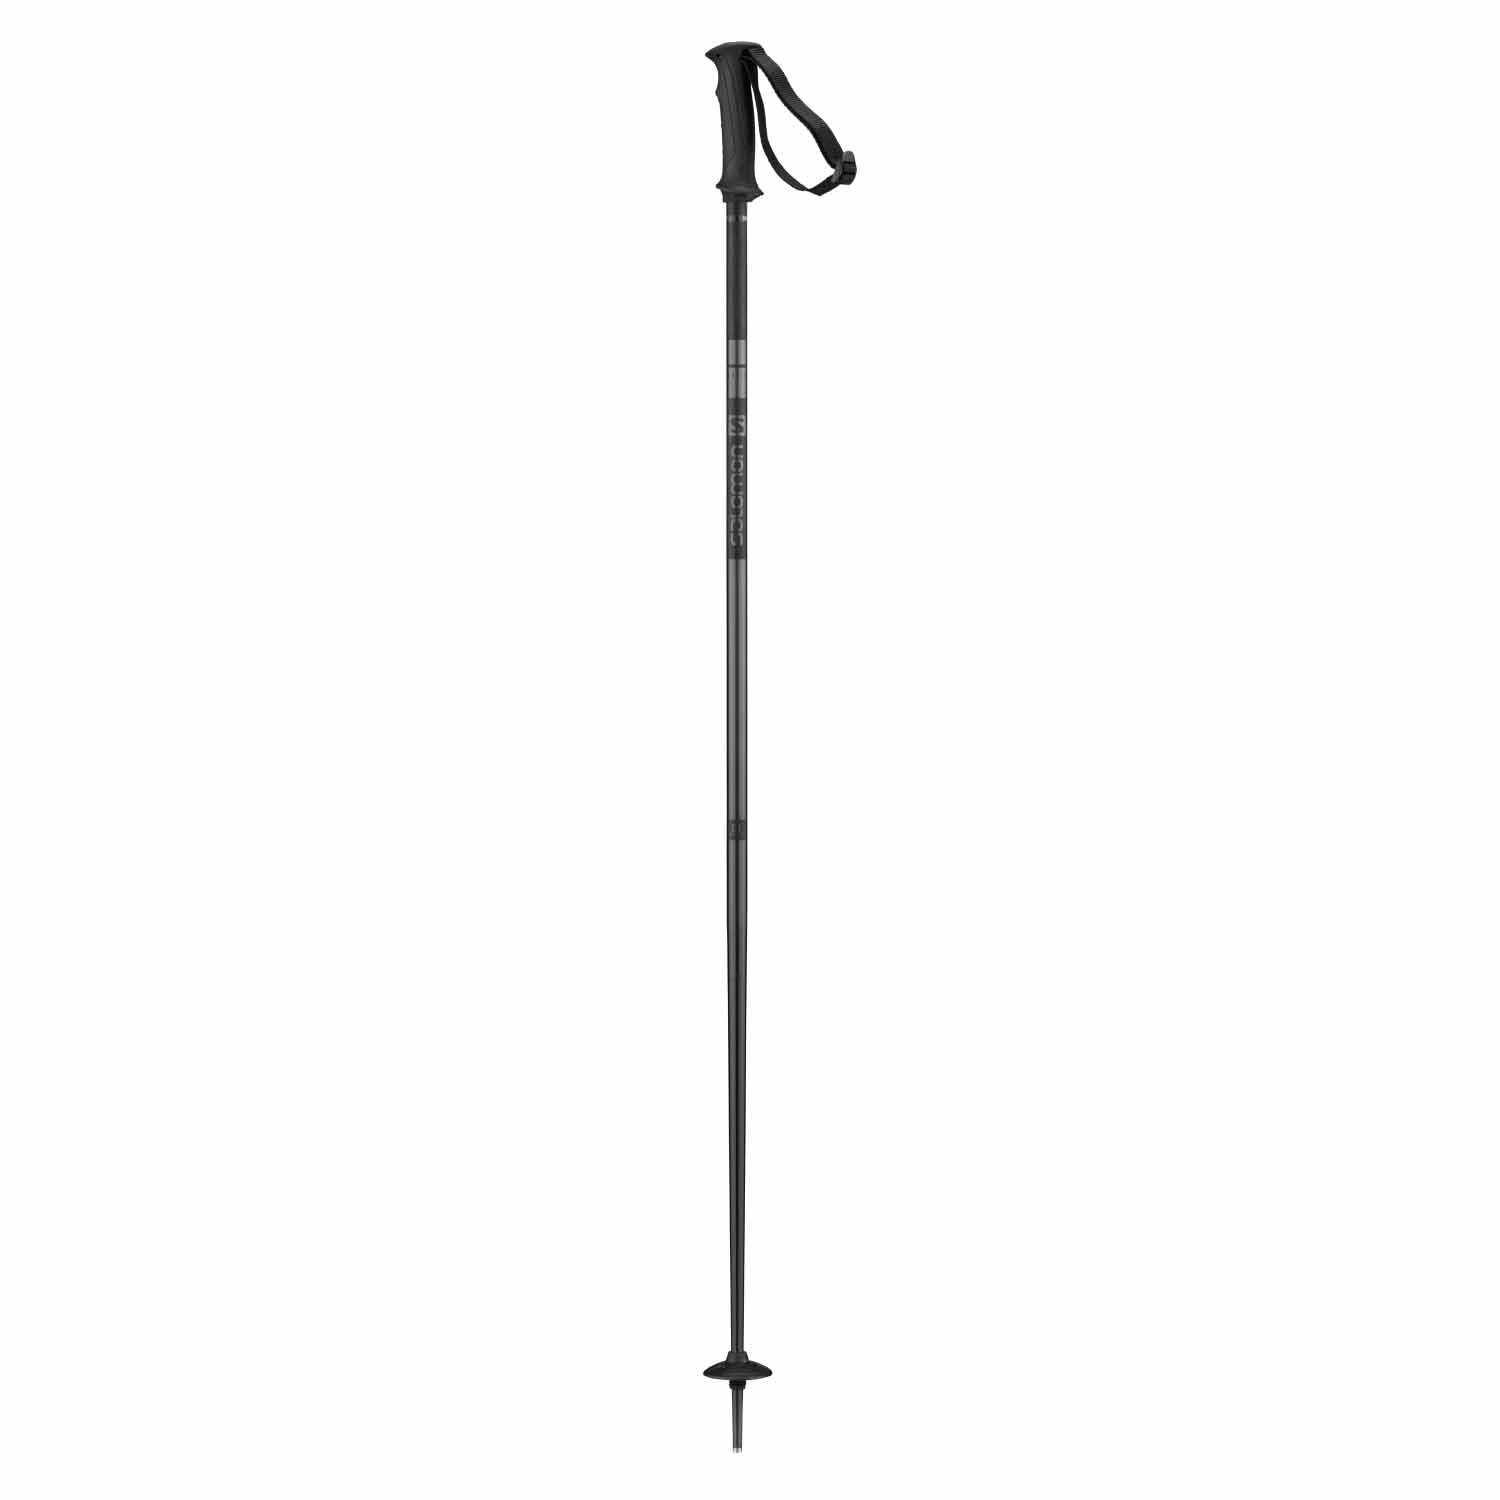 Salomon Arctic Ski Pole Black 2020